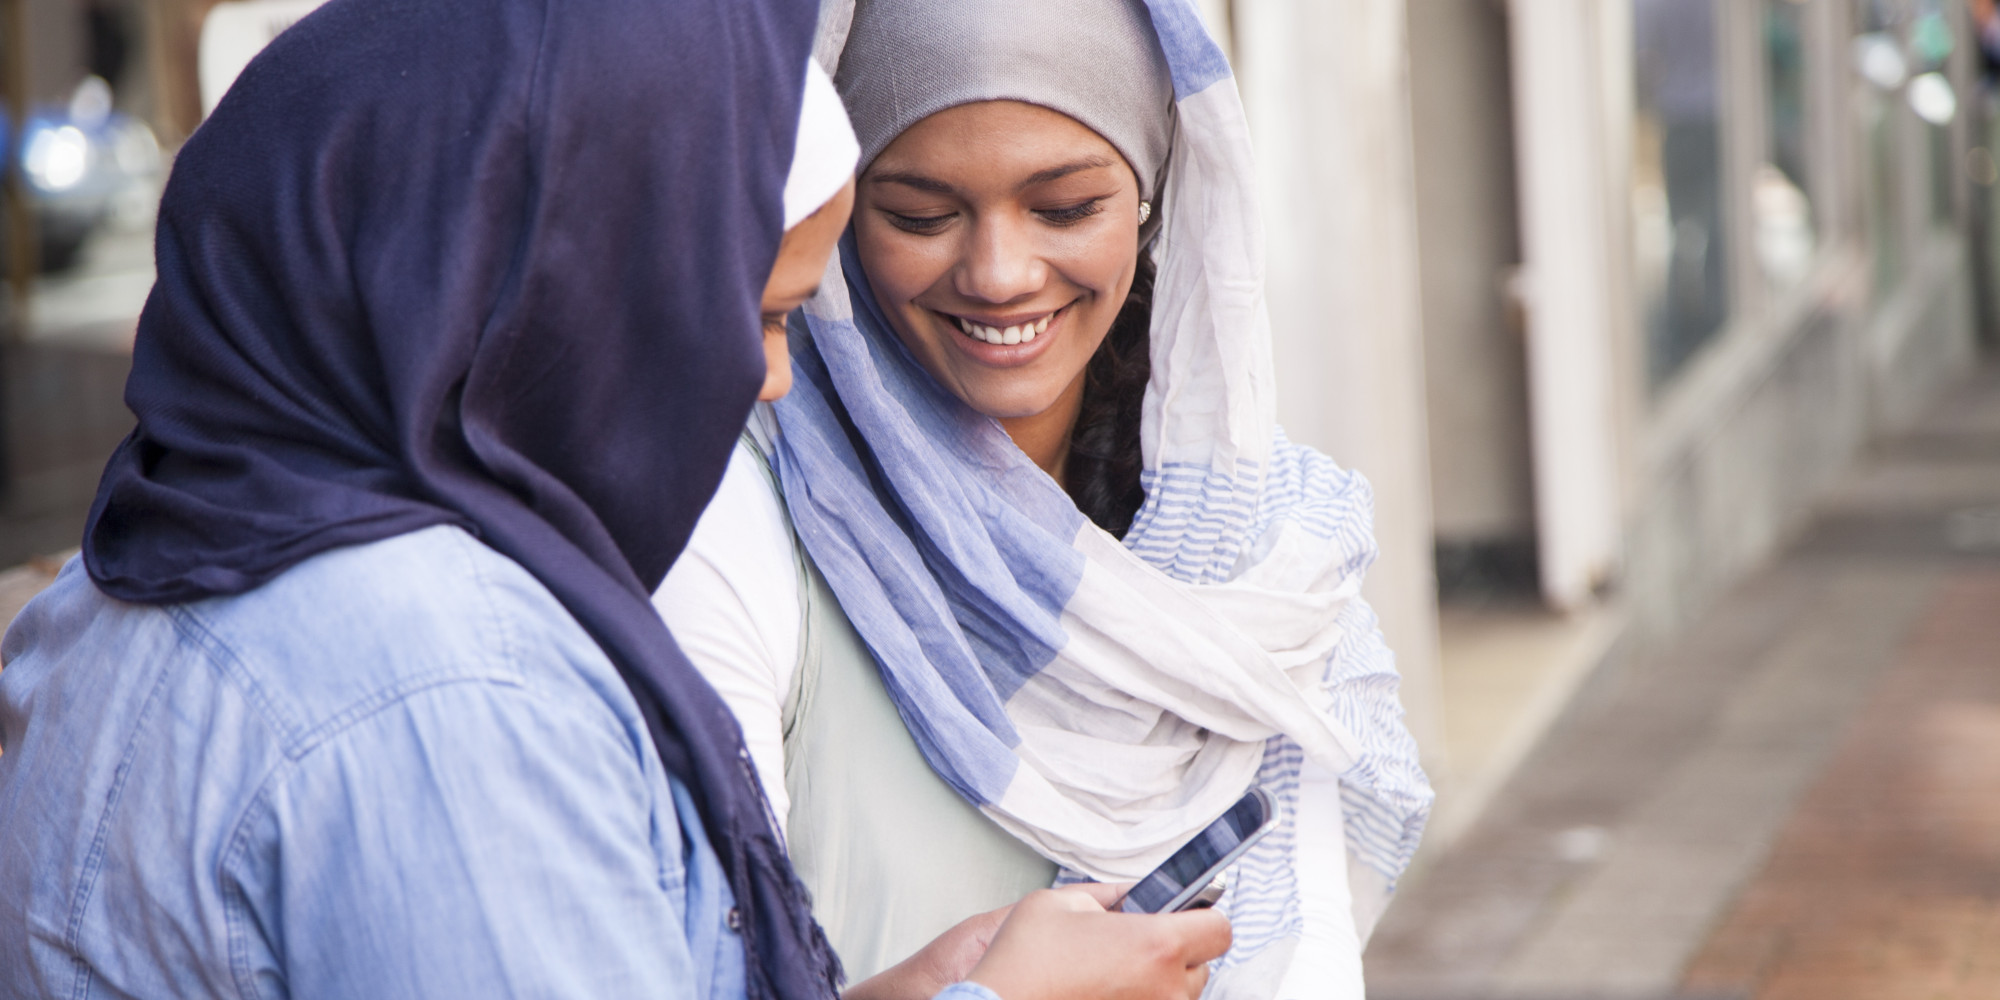 sedalia muslim girl personals Single muslim women on dating: there was the muslim dating event at excel where girls tend to find a middle path about their identity.